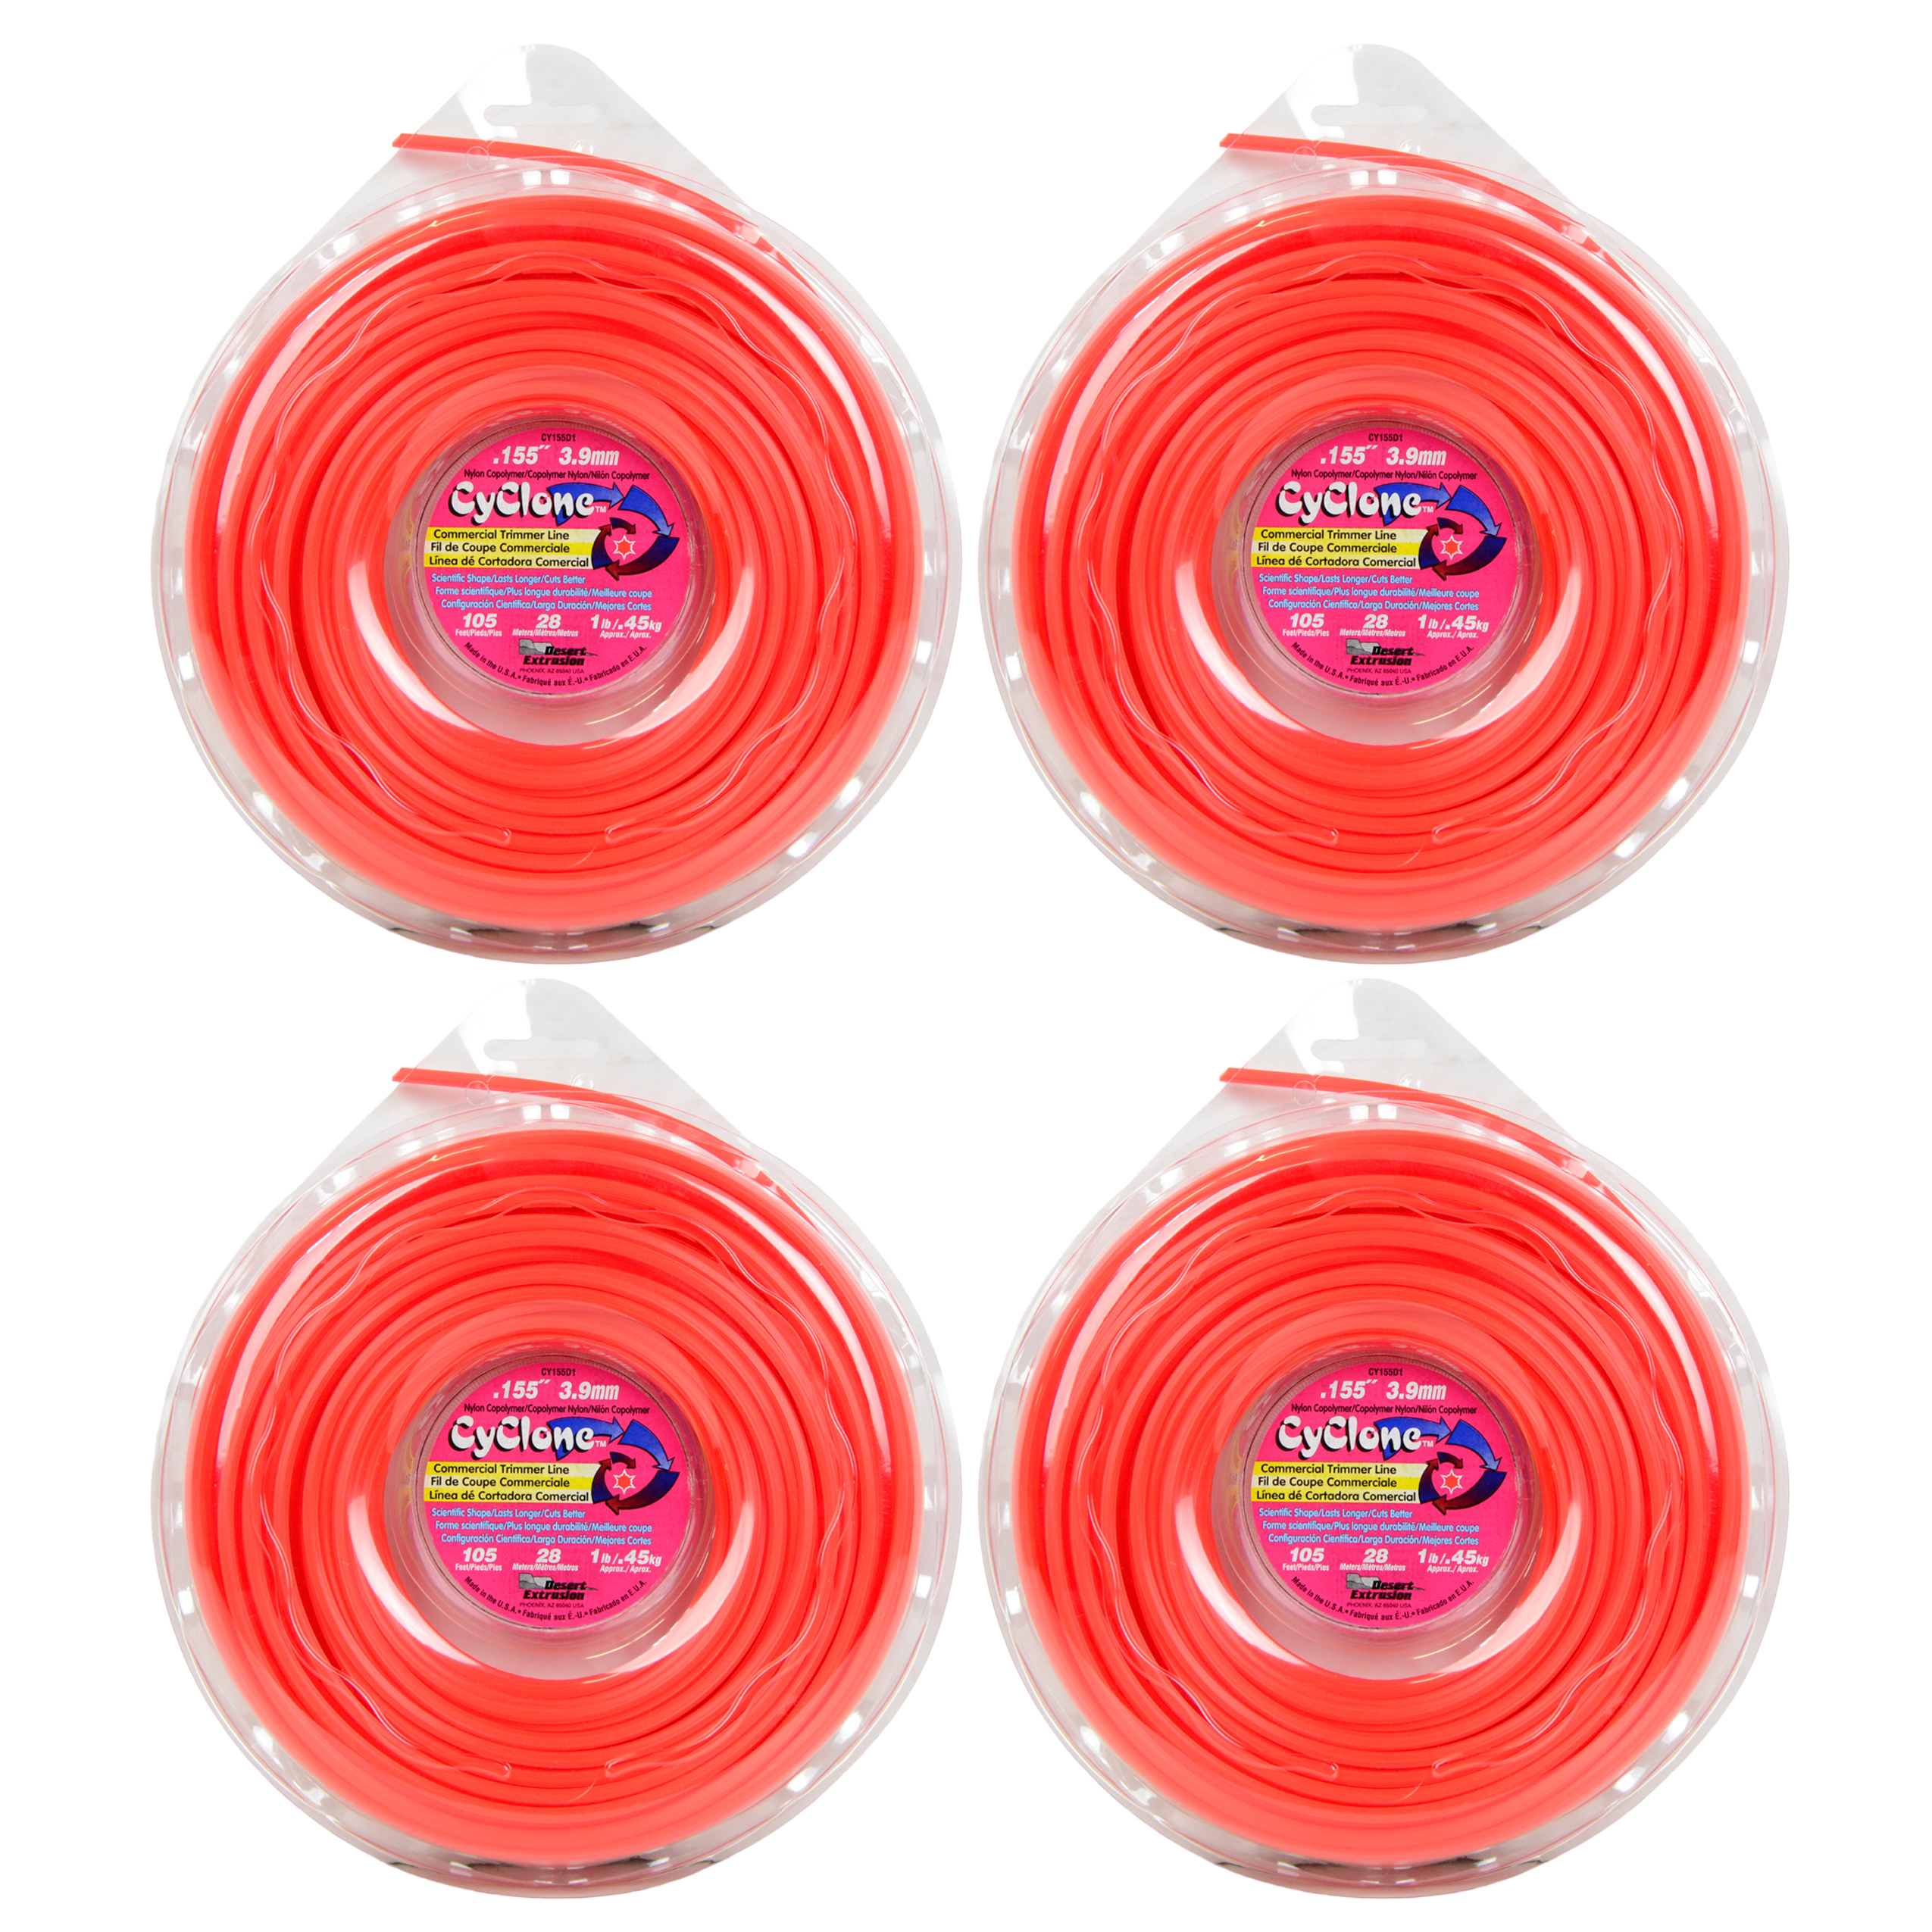 "Cyclone CY155D1 0.155"" x 155' Commercial String Trimmer Line Red (4-Pack), Made in the USA"